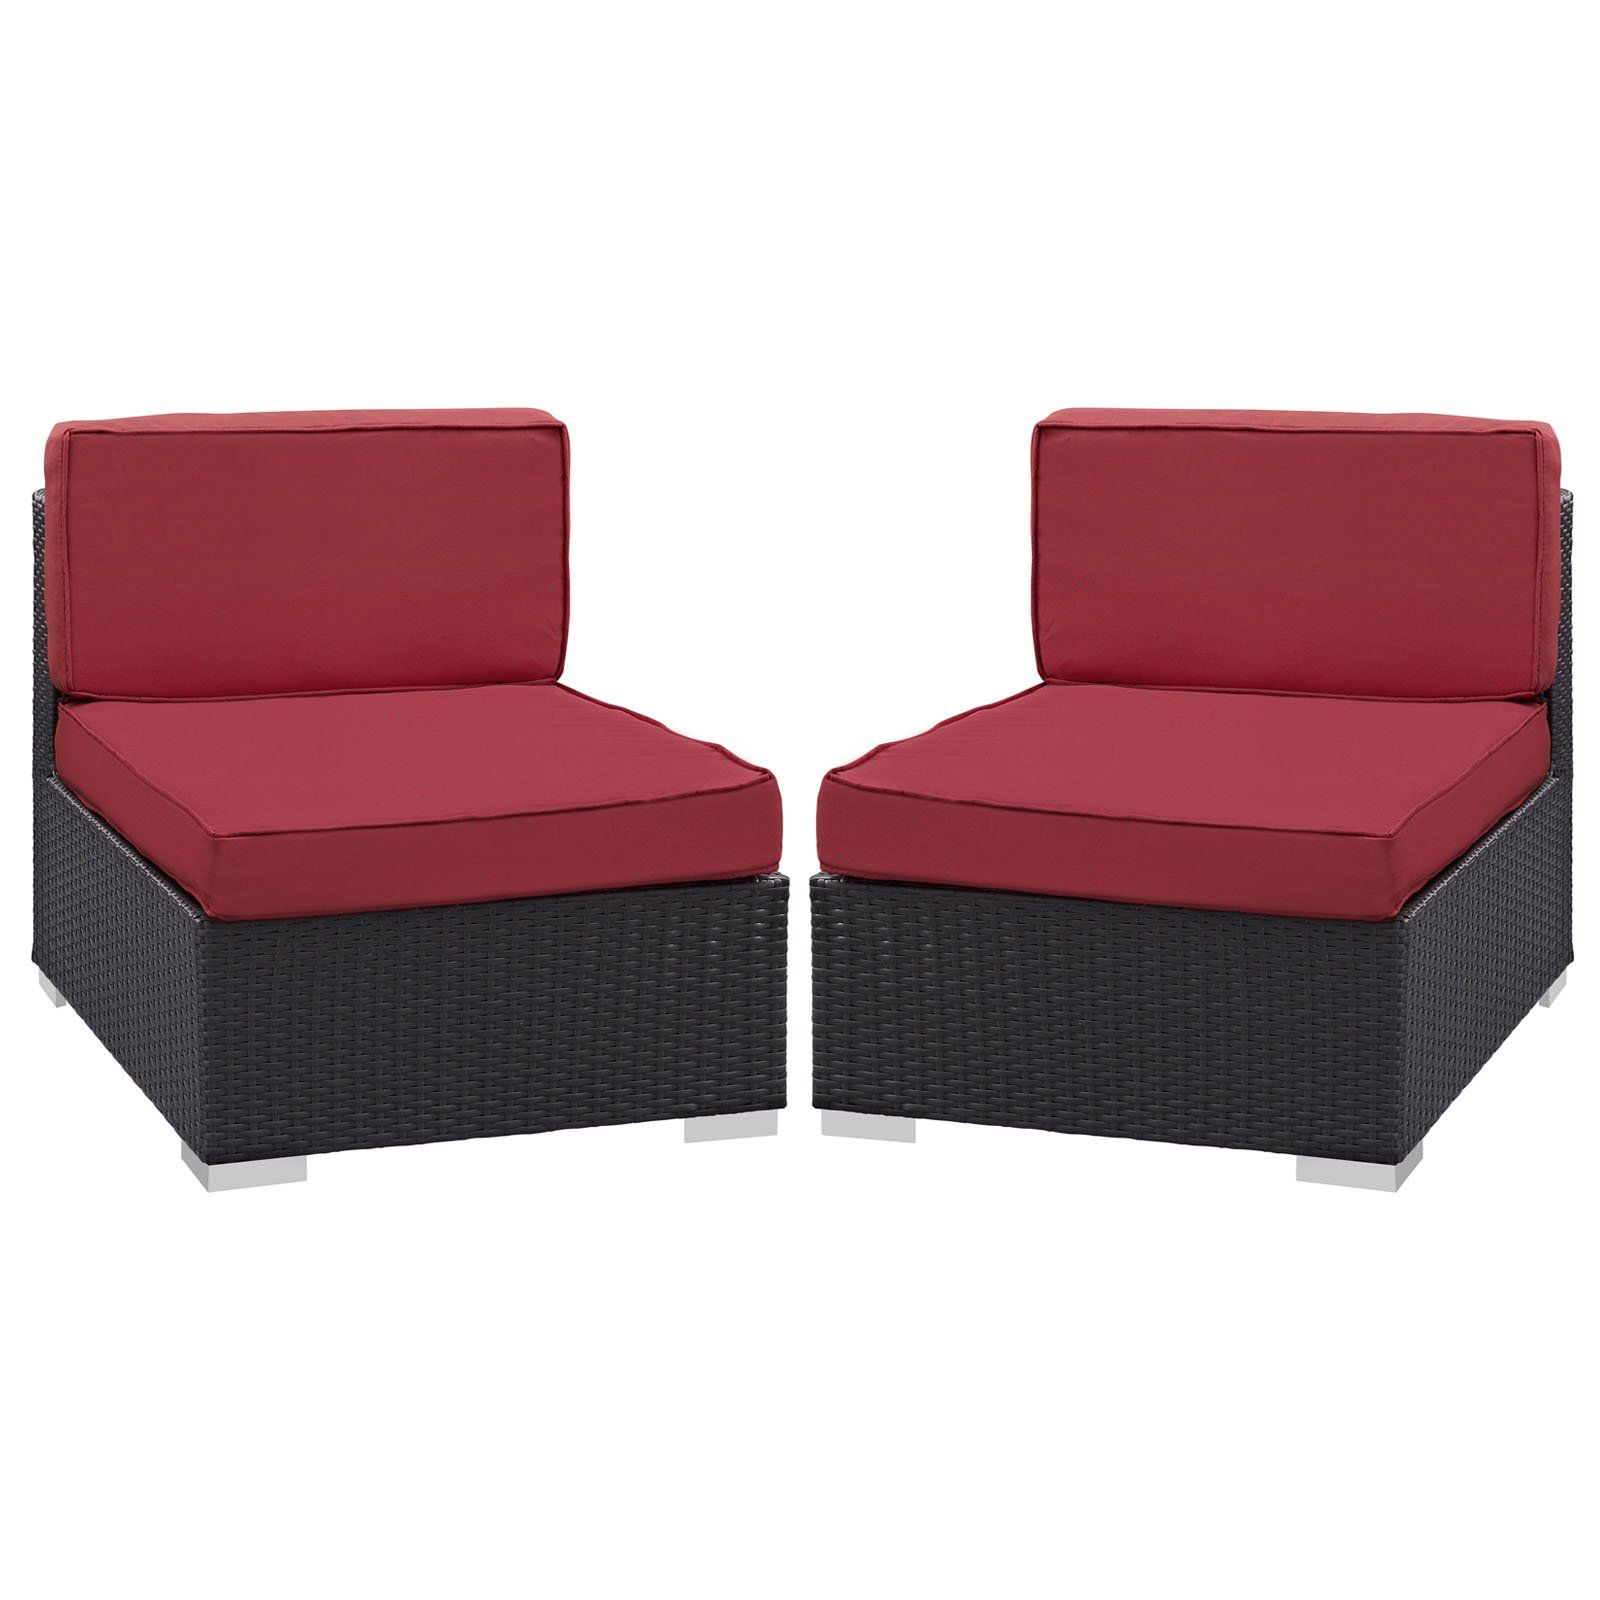 Plutus Brands MF1835 Armless Chair Outdoor Patio (Set Of 2), Espresso Red.